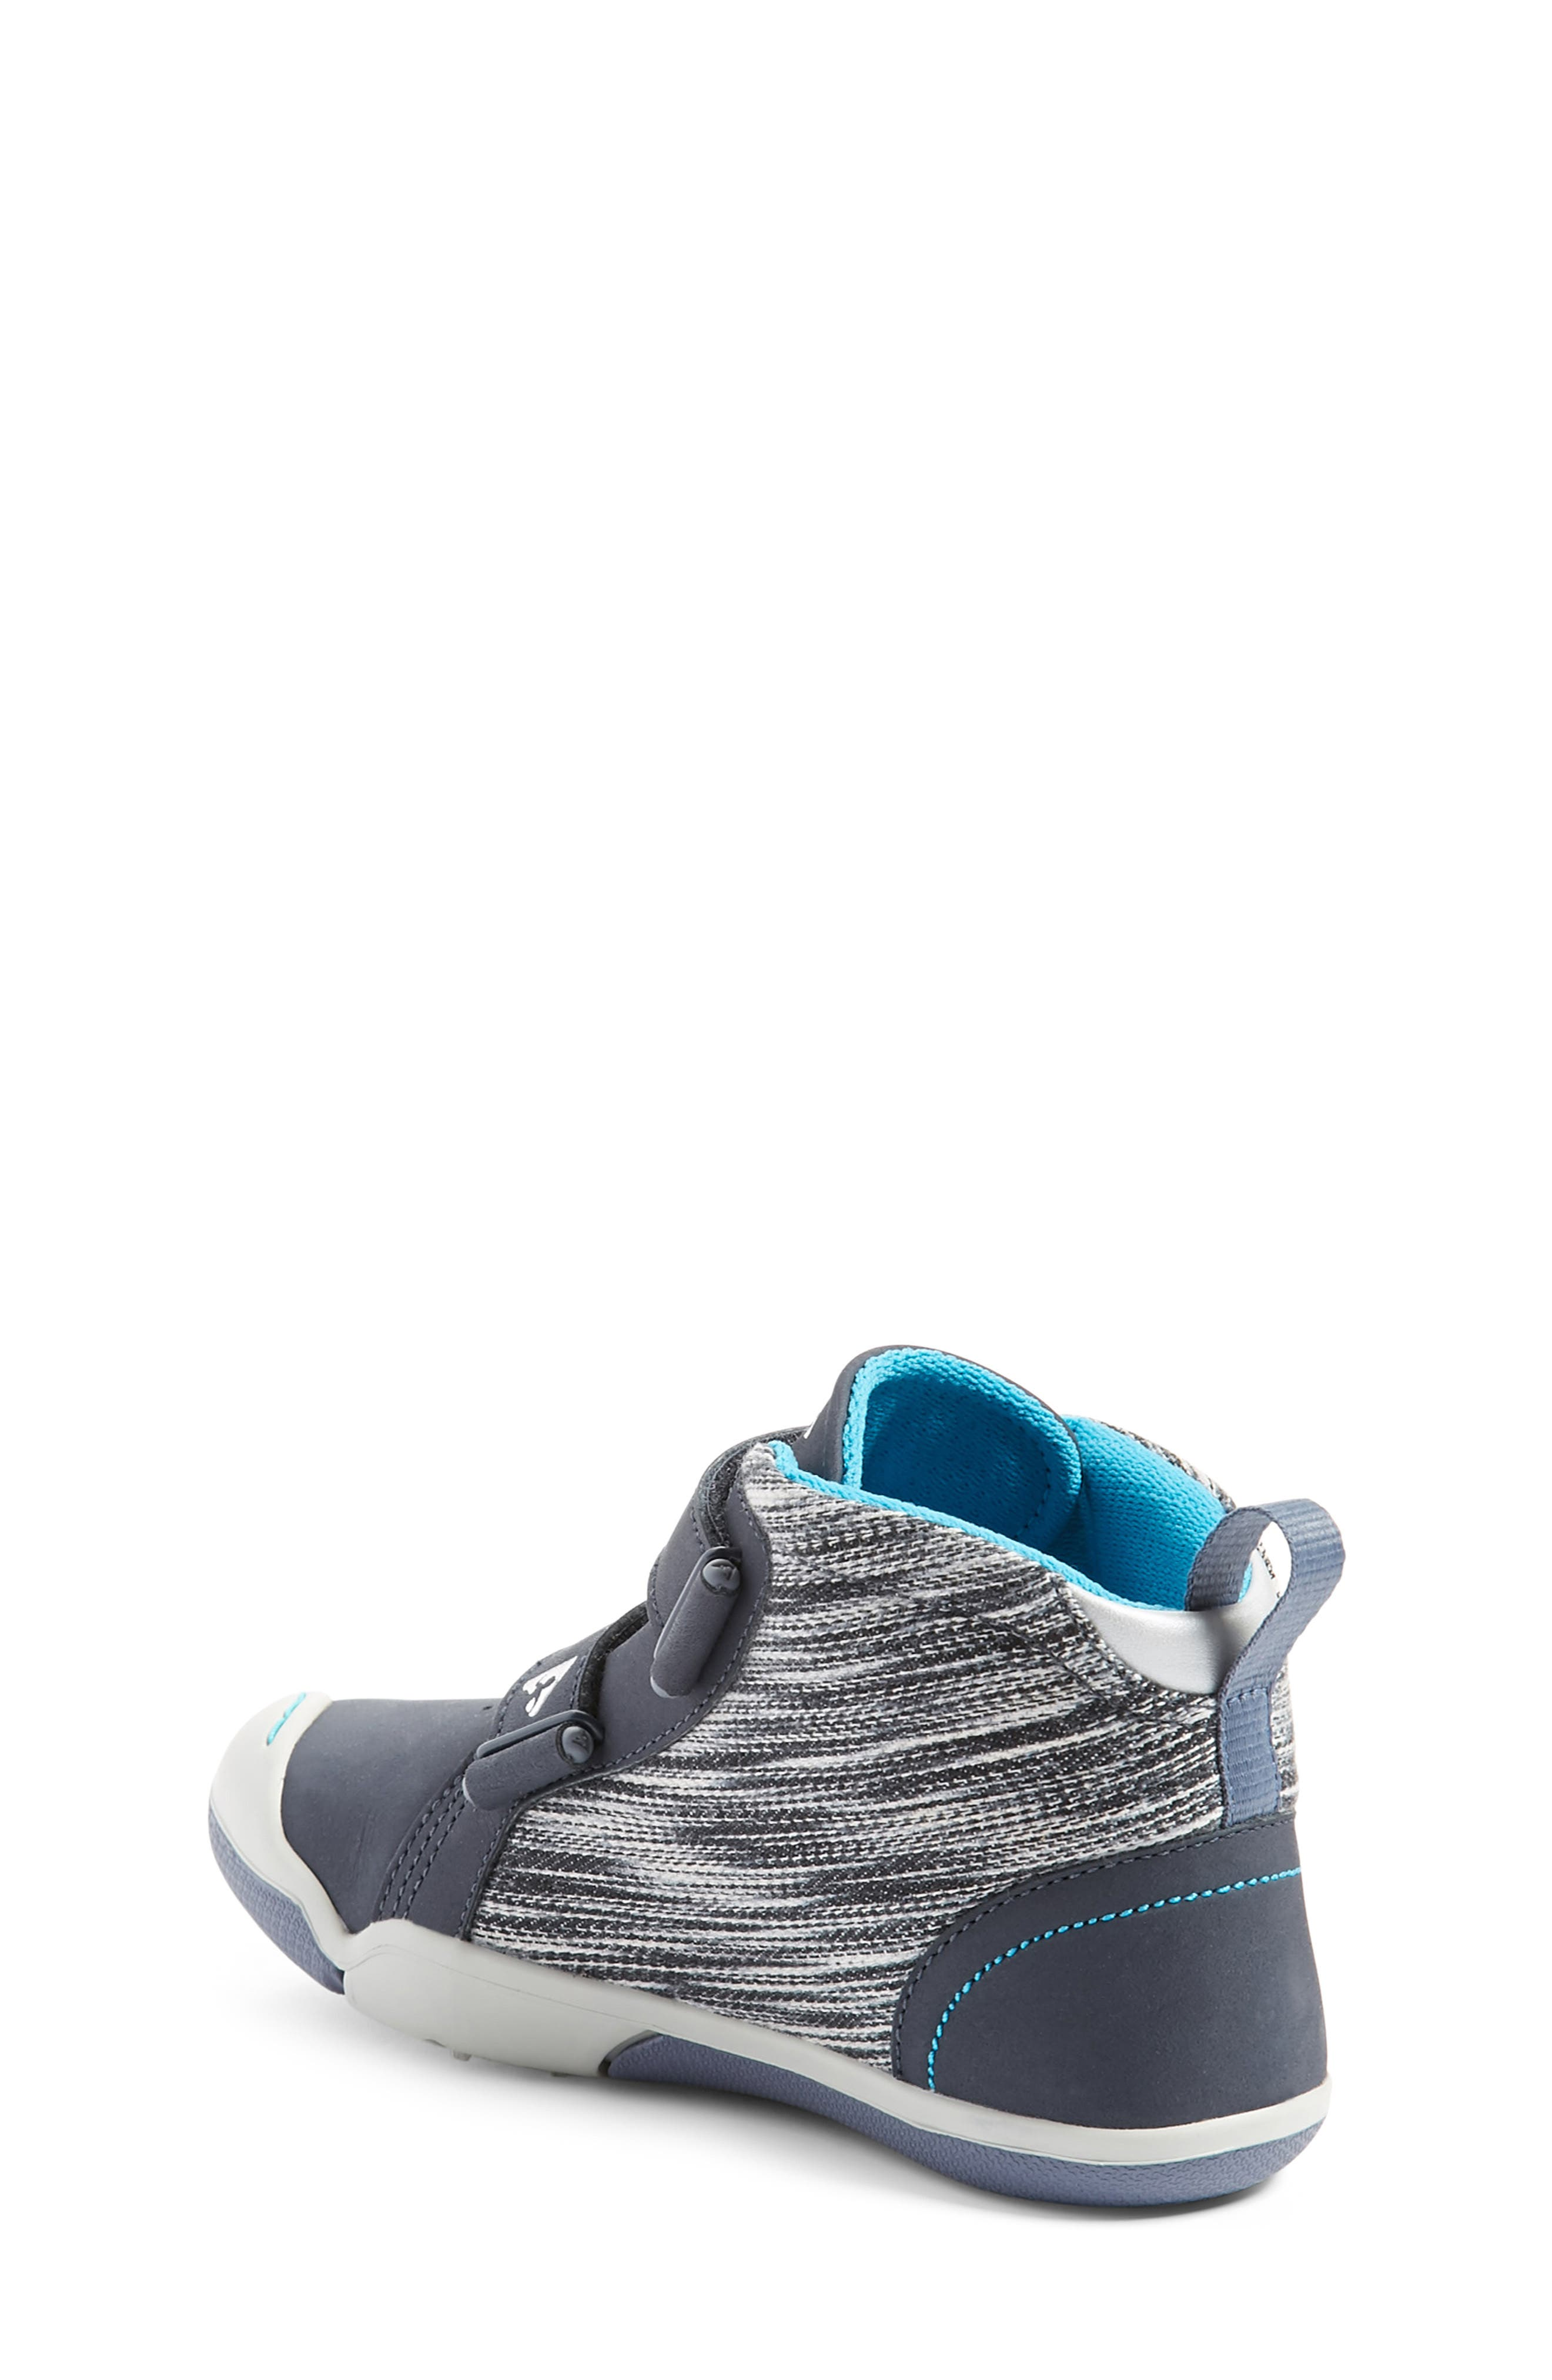 Max Customizable High Top Sneaker,                             Alternate thumbnail 2, color,                             LEATHER WIND